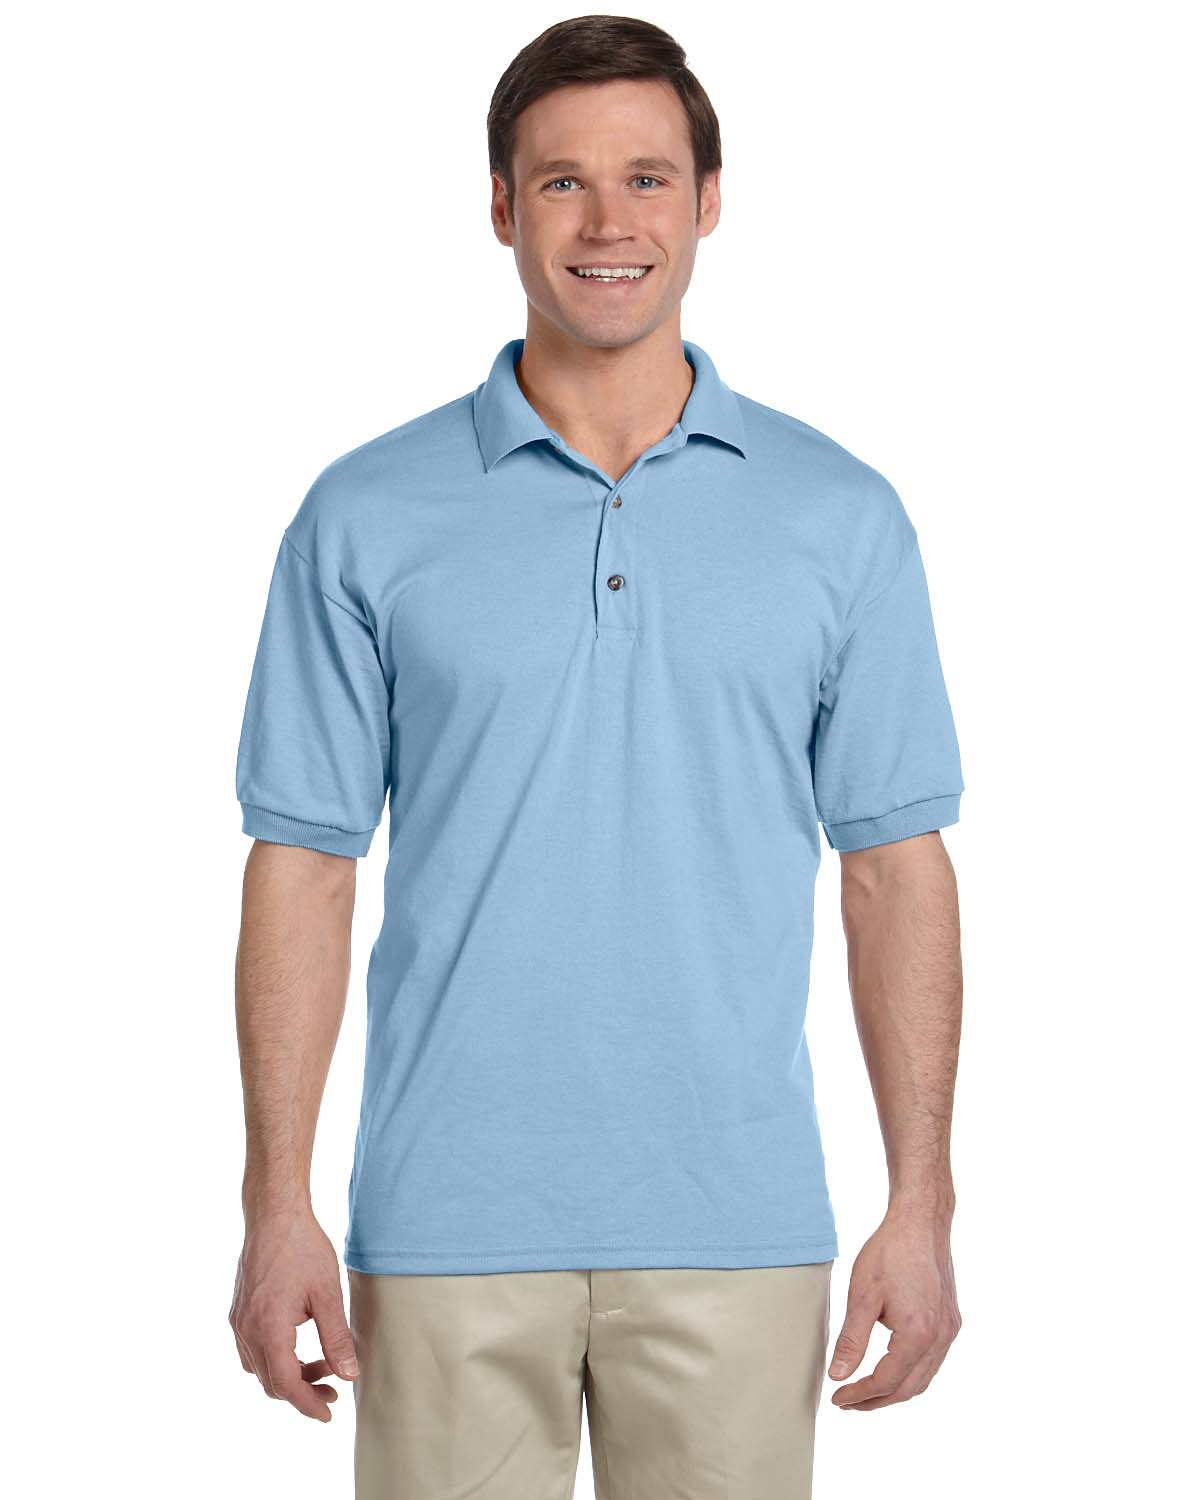 New Gildan Men 39 S Dryblend Moisture Wicking Jersey Polo